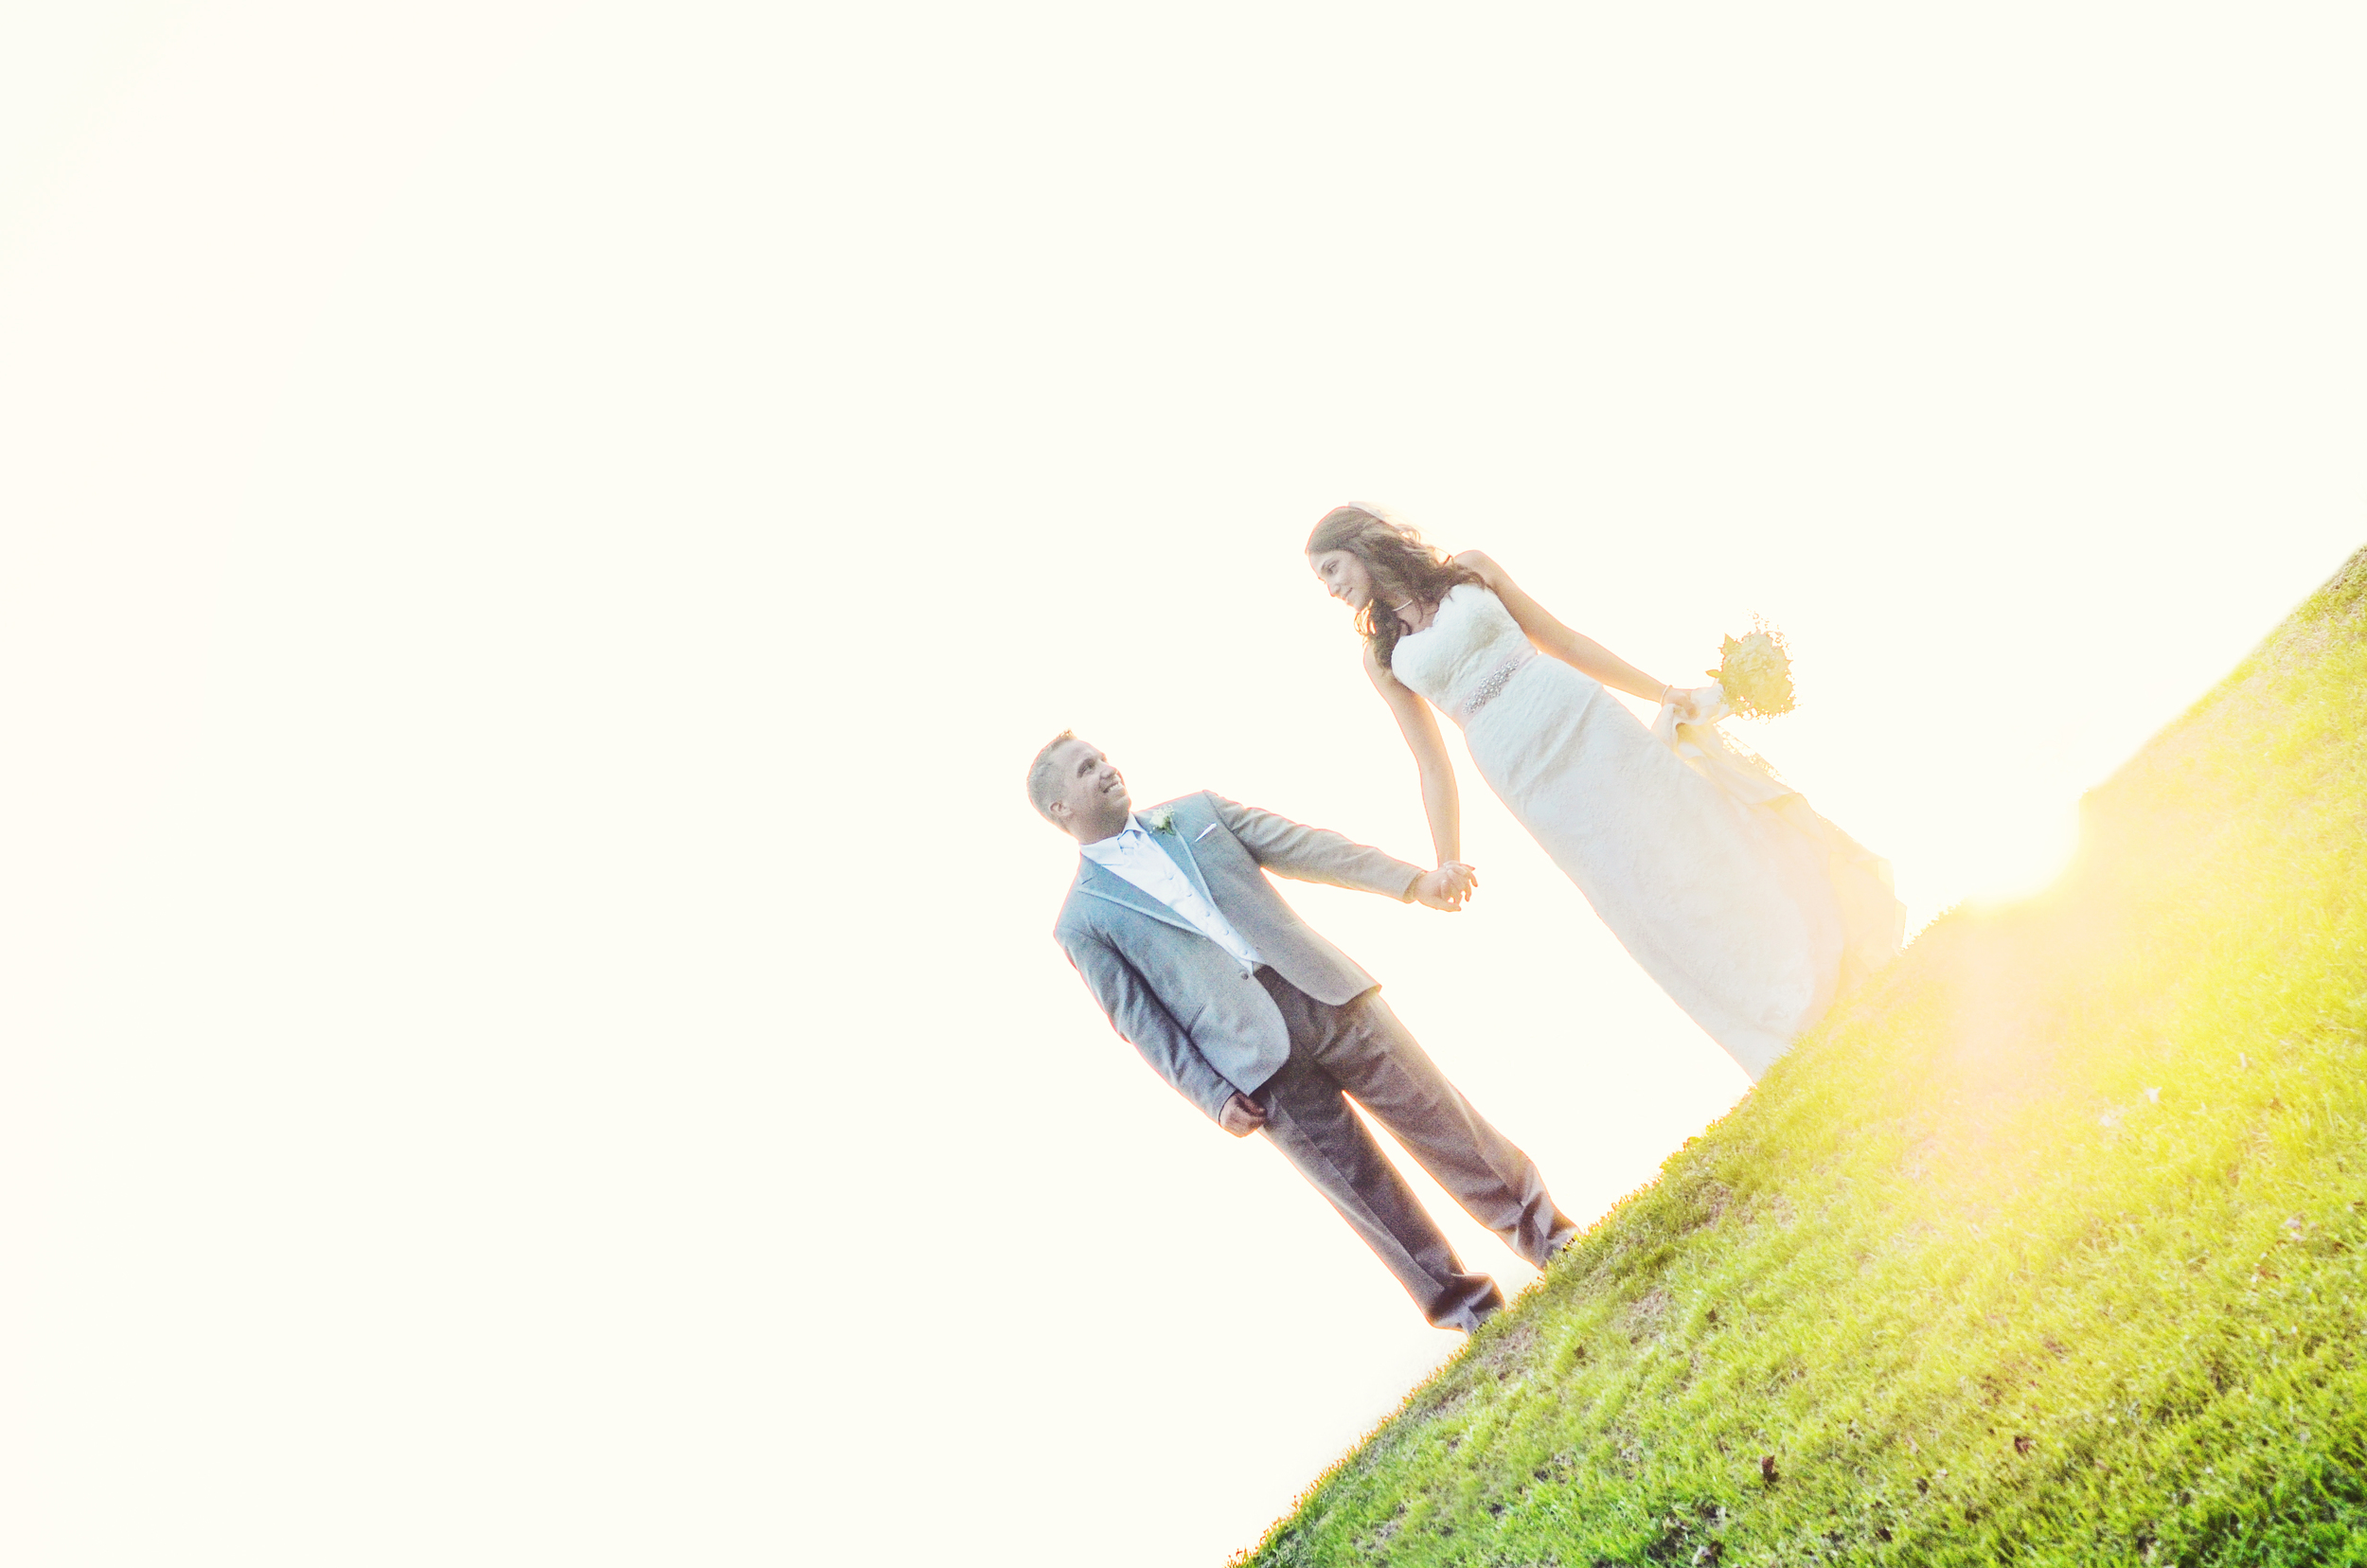 This is definitely my favorite image from this wedding and one of my favorites ever!